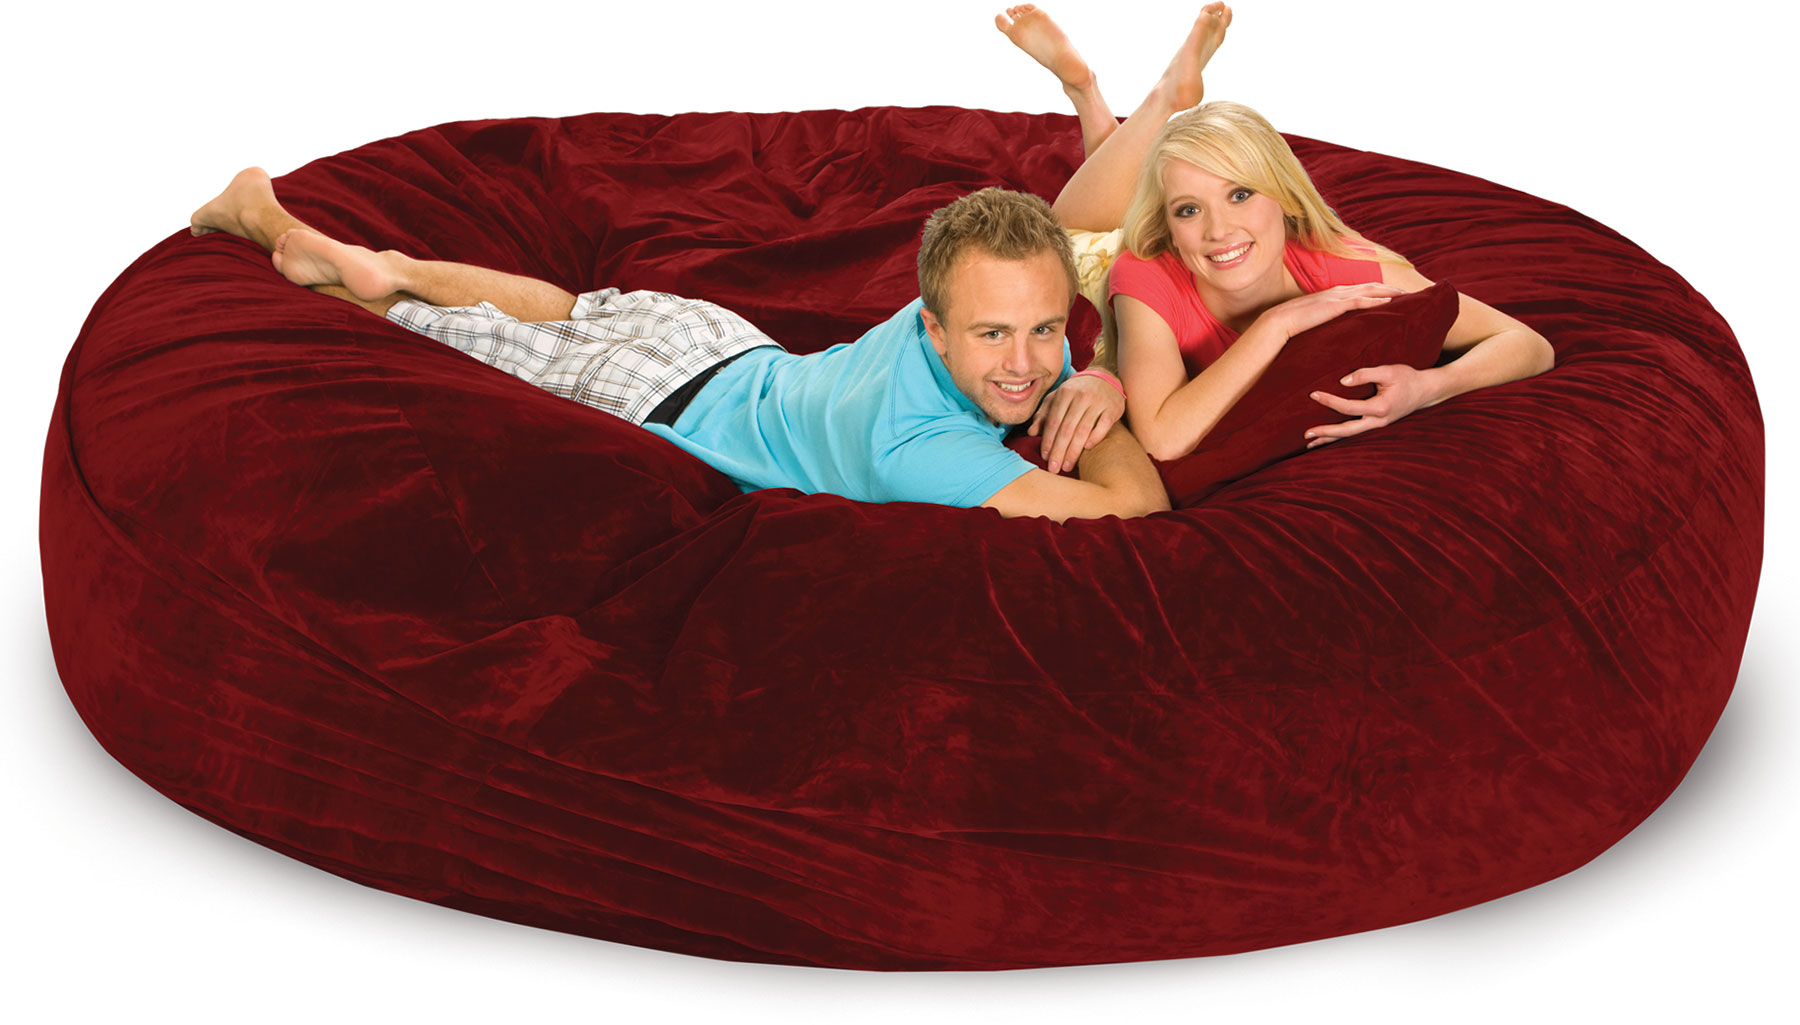 Couple on 8ft Round Sack